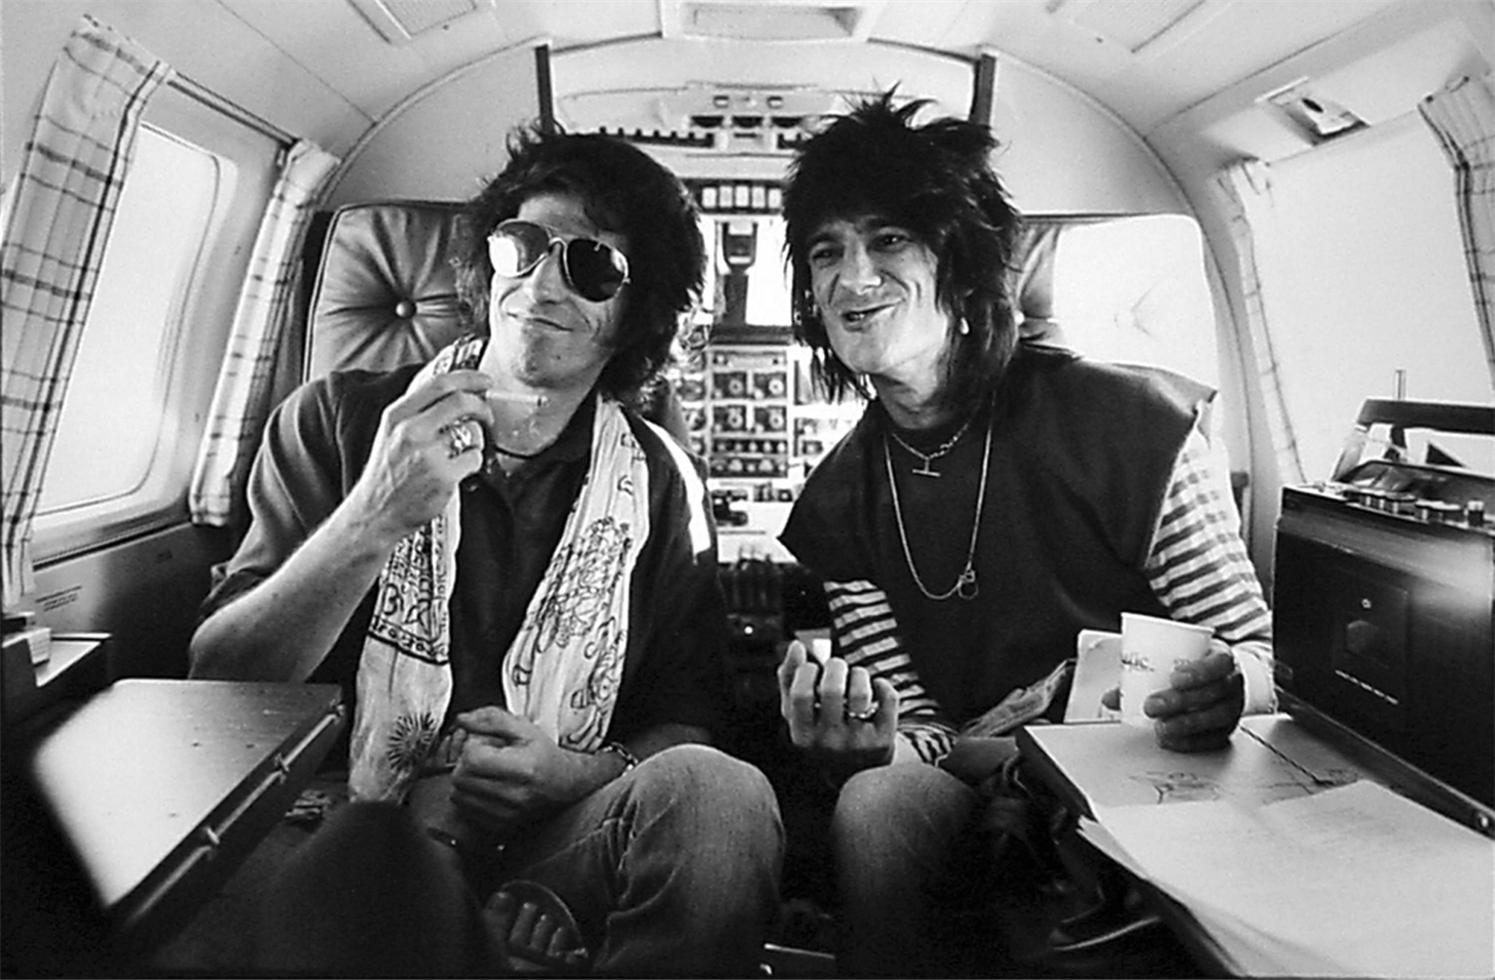 Keith Richards and Ronnie Wood on Lear Jet 1979 1495x980